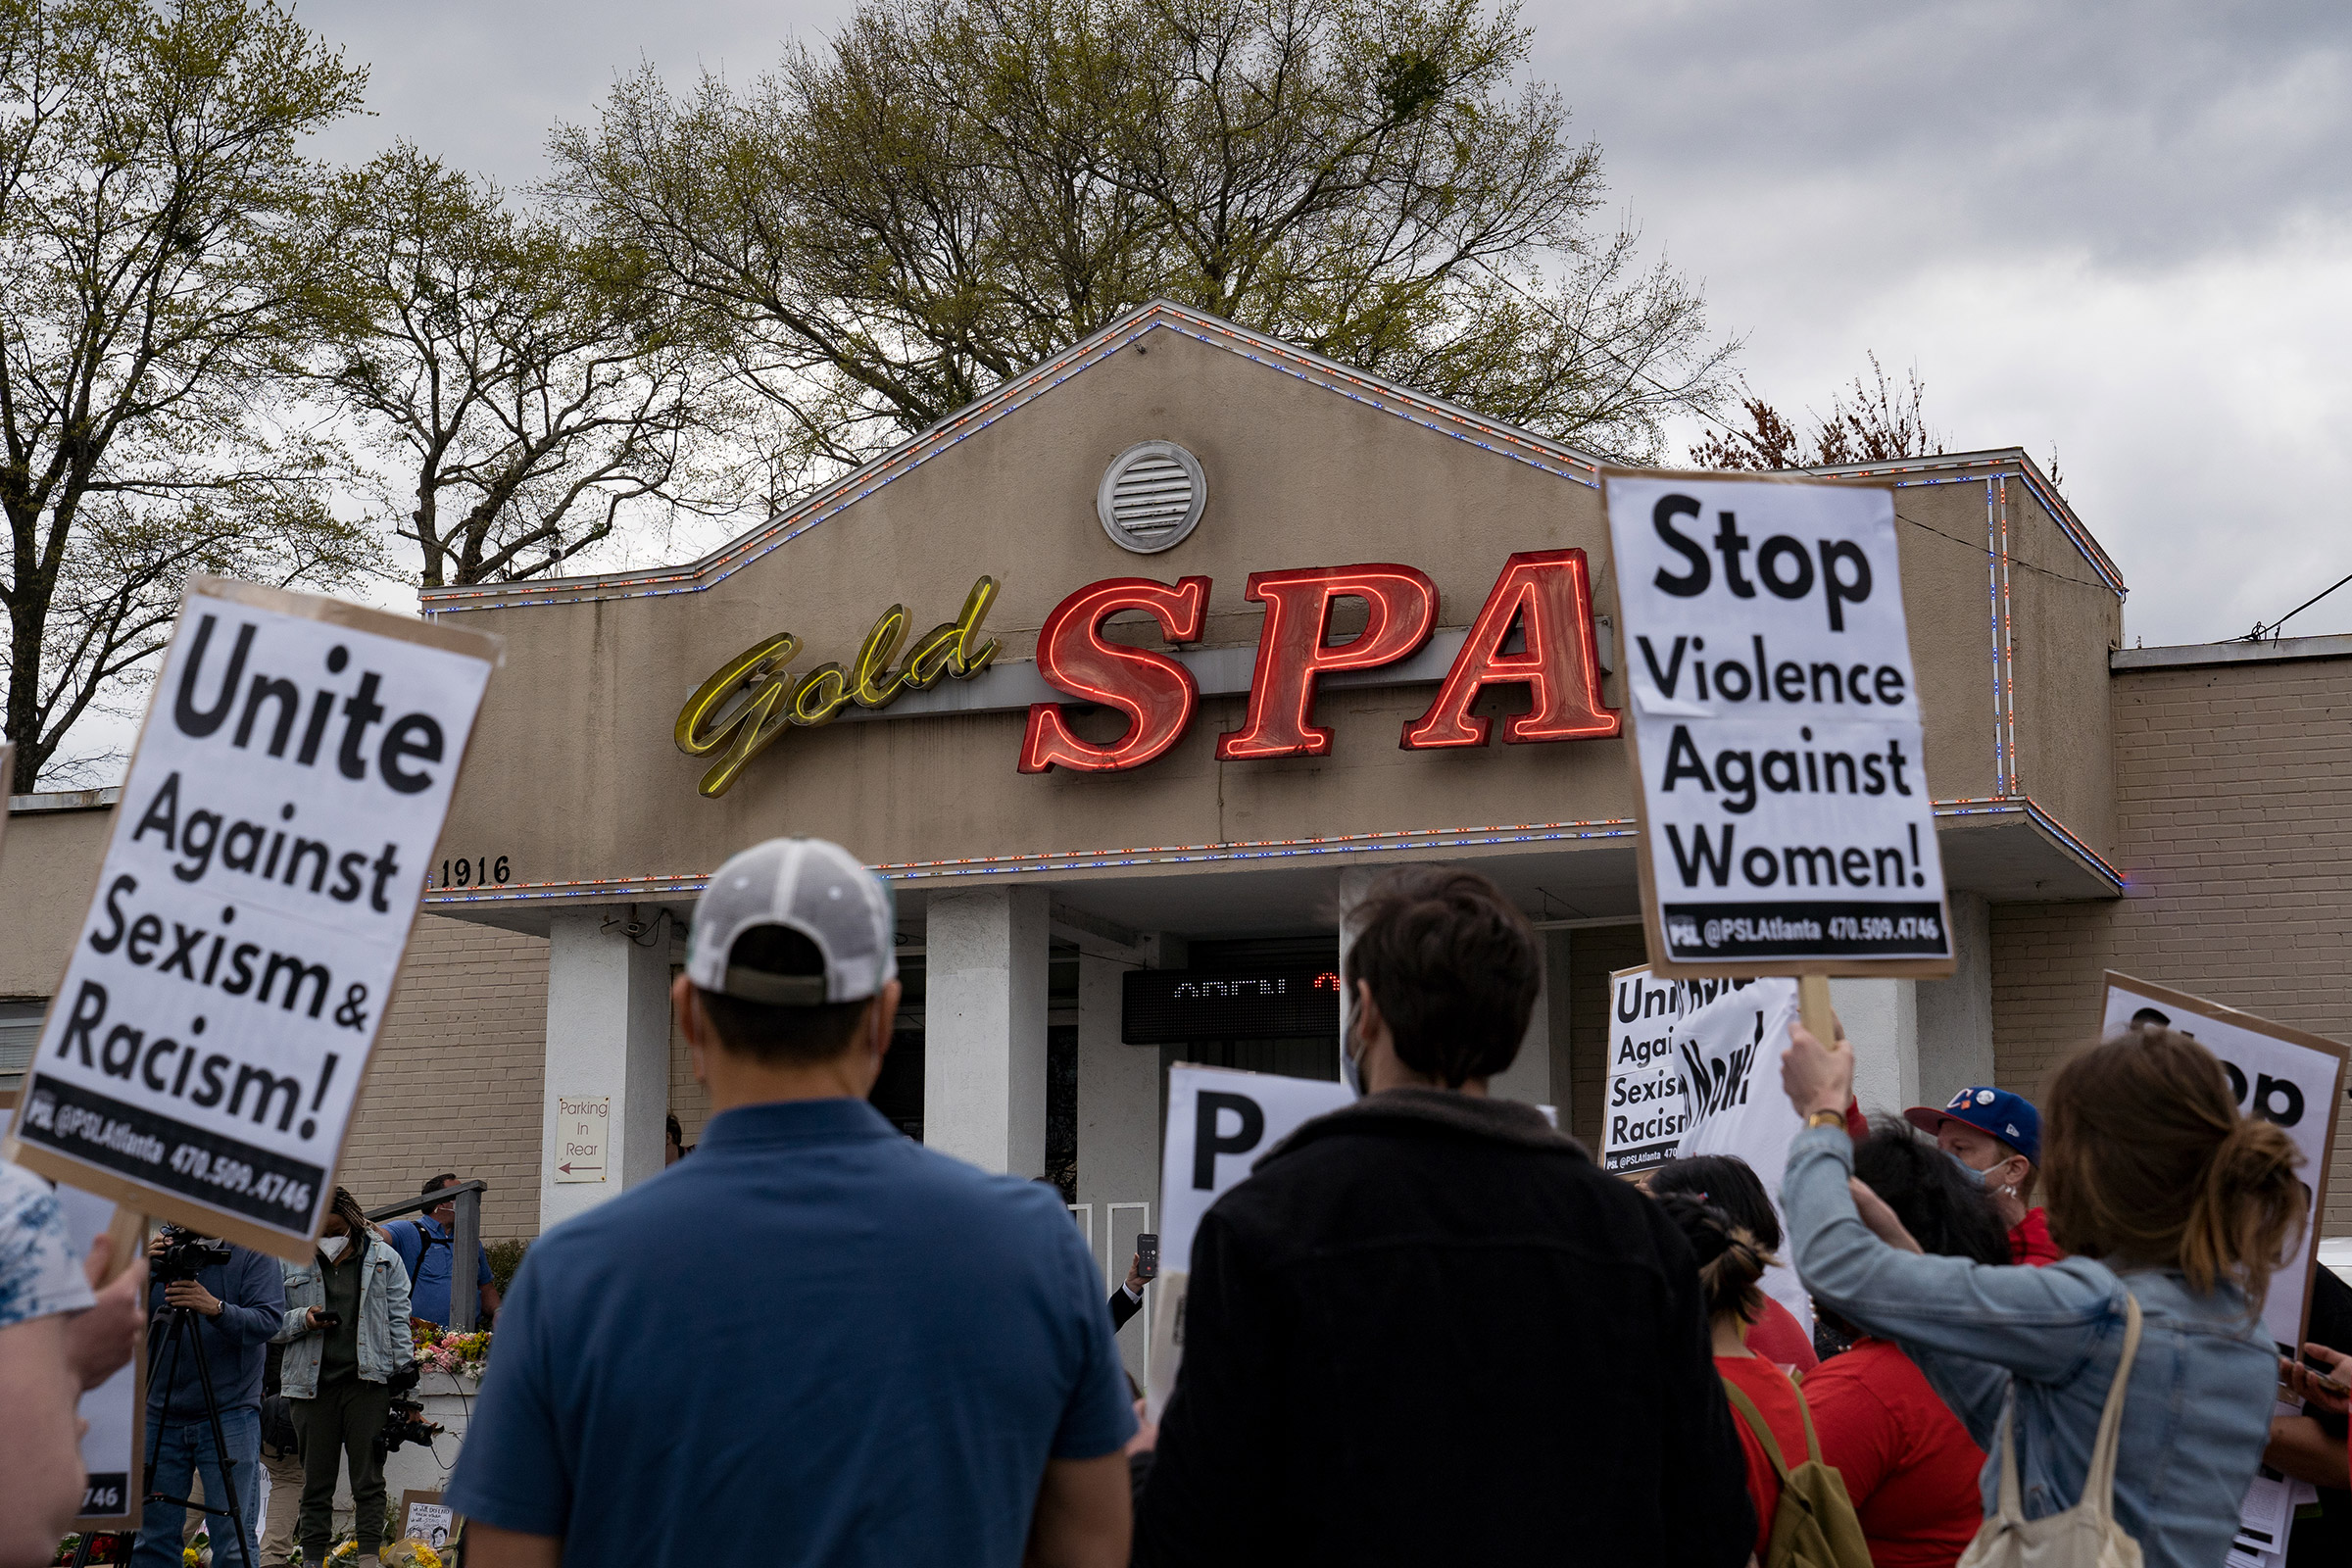 Activists demonstrate outside Gold Spa following Tuesday night's shooting, in Atlanta, Ga., on March 18, 2021.